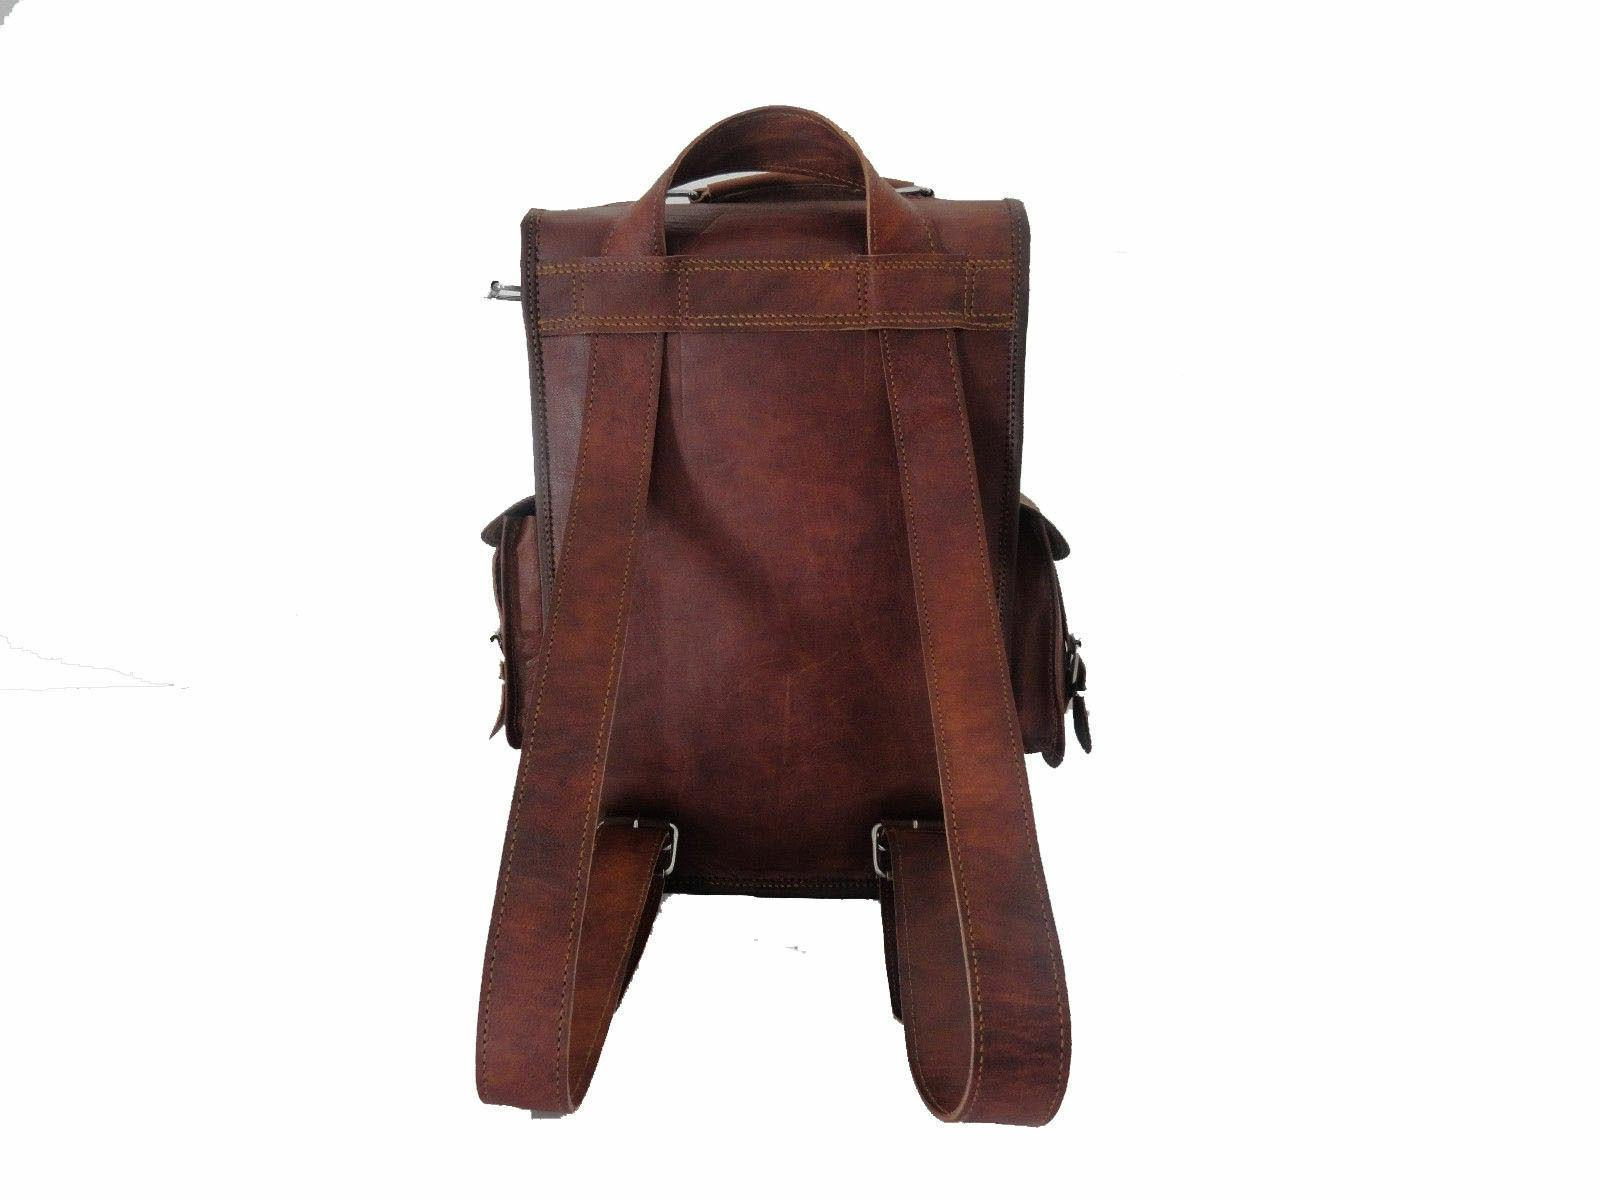 Men Laptop Backpack Shoulder Bag Rucksack Sling Bag